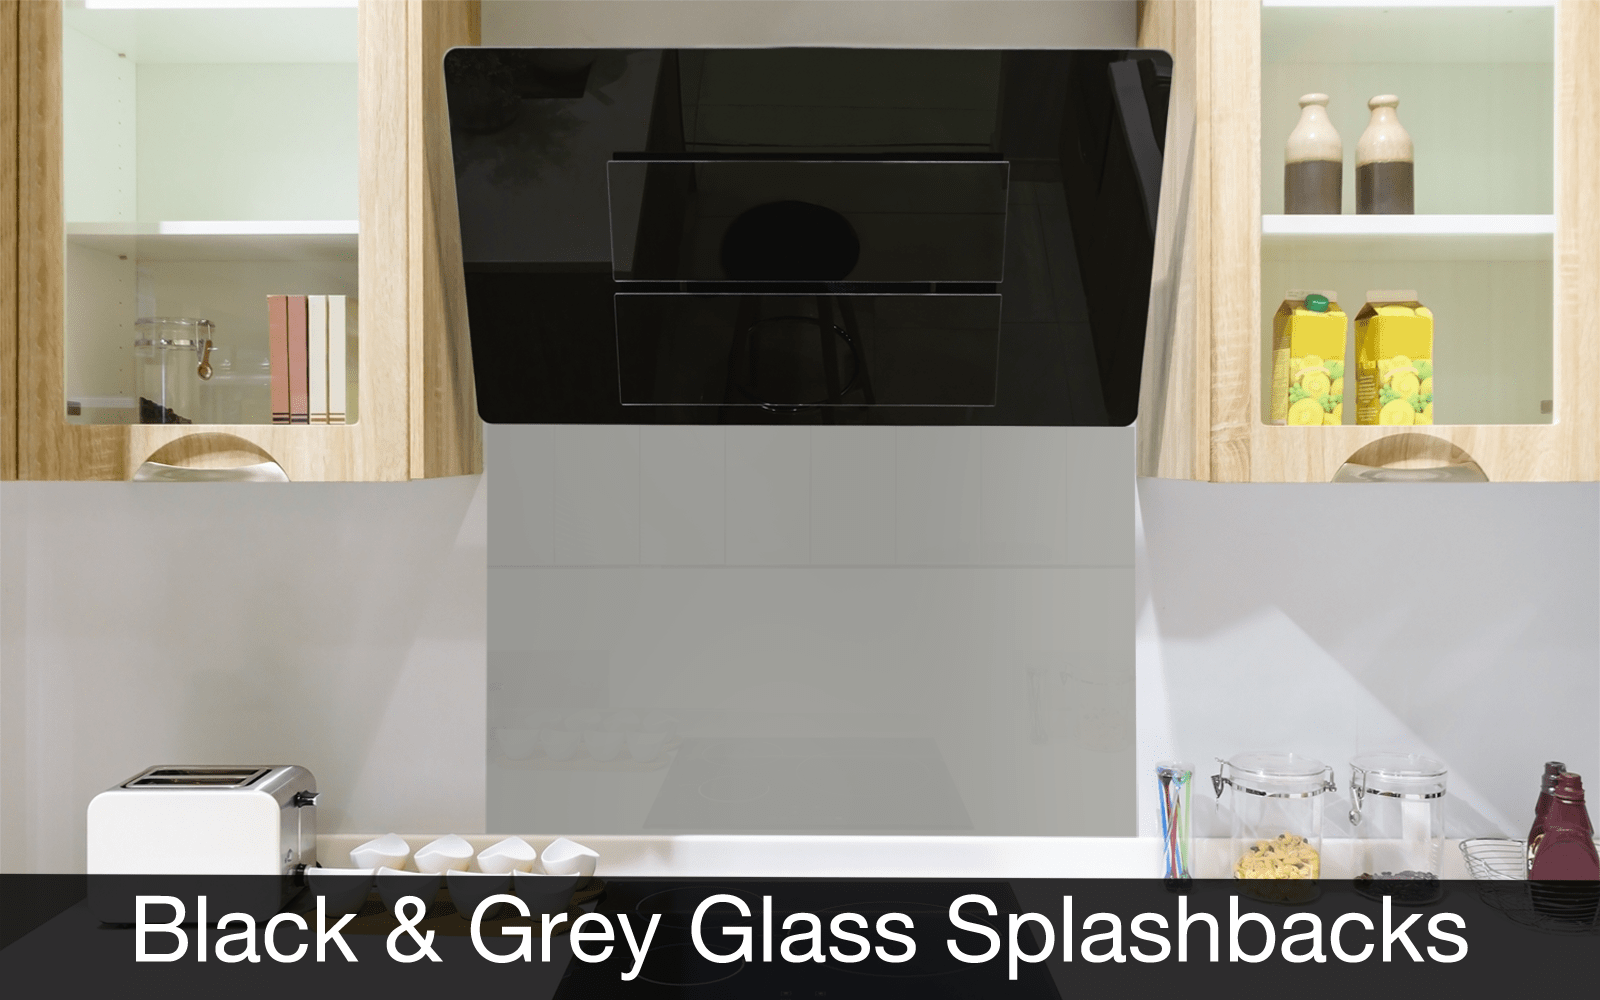 Black and Grey Glass Splashbacks